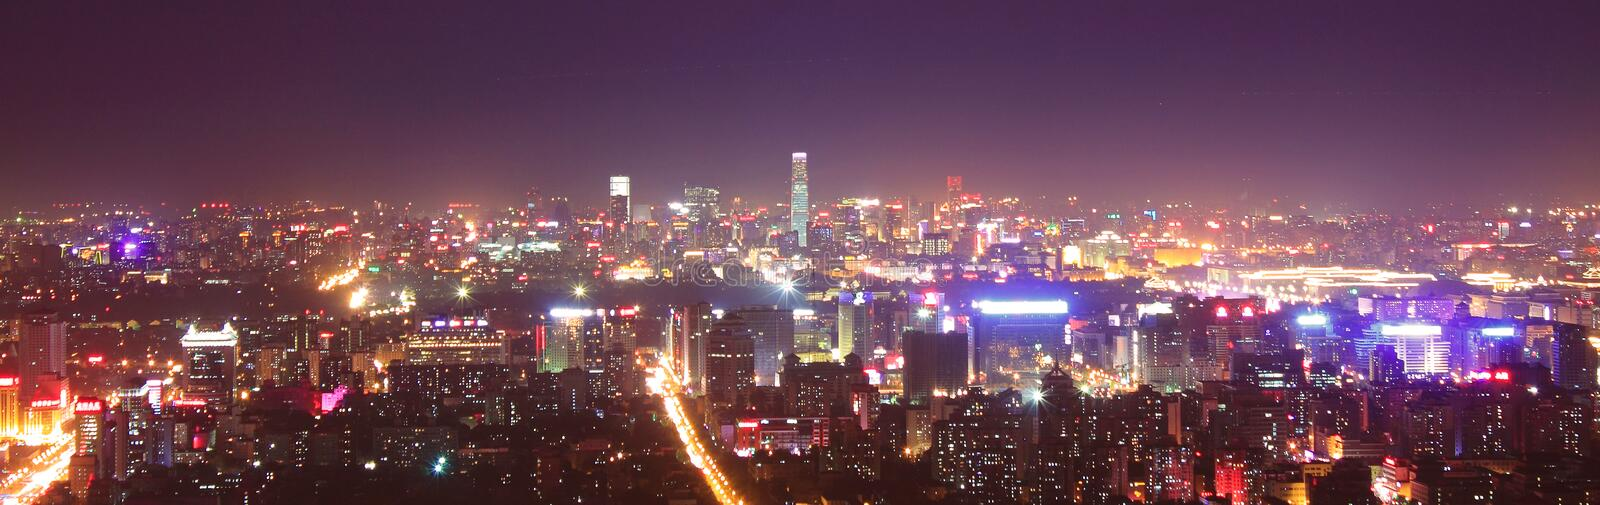 Beijing night scenery royalty free stock photography